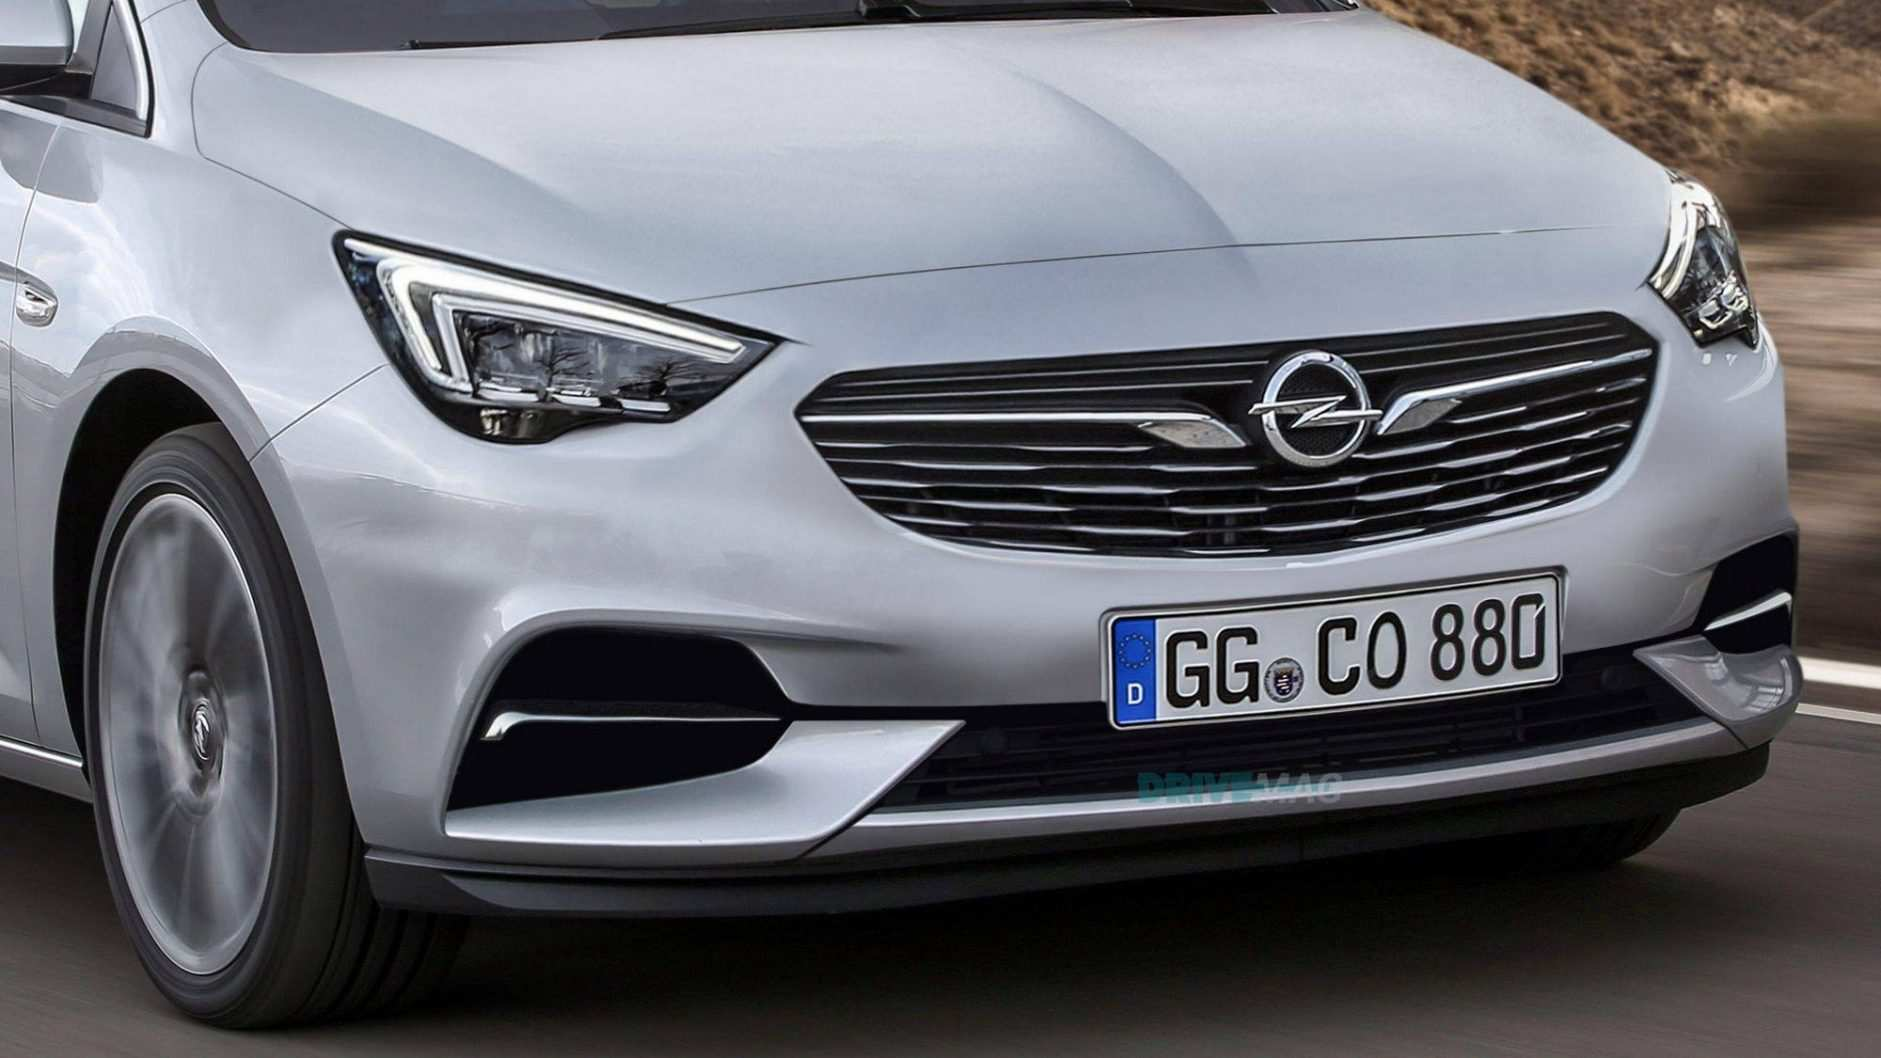 87 Great Opel Corsa 2019 Psa New Review with Opel Corsa 2019 Psa